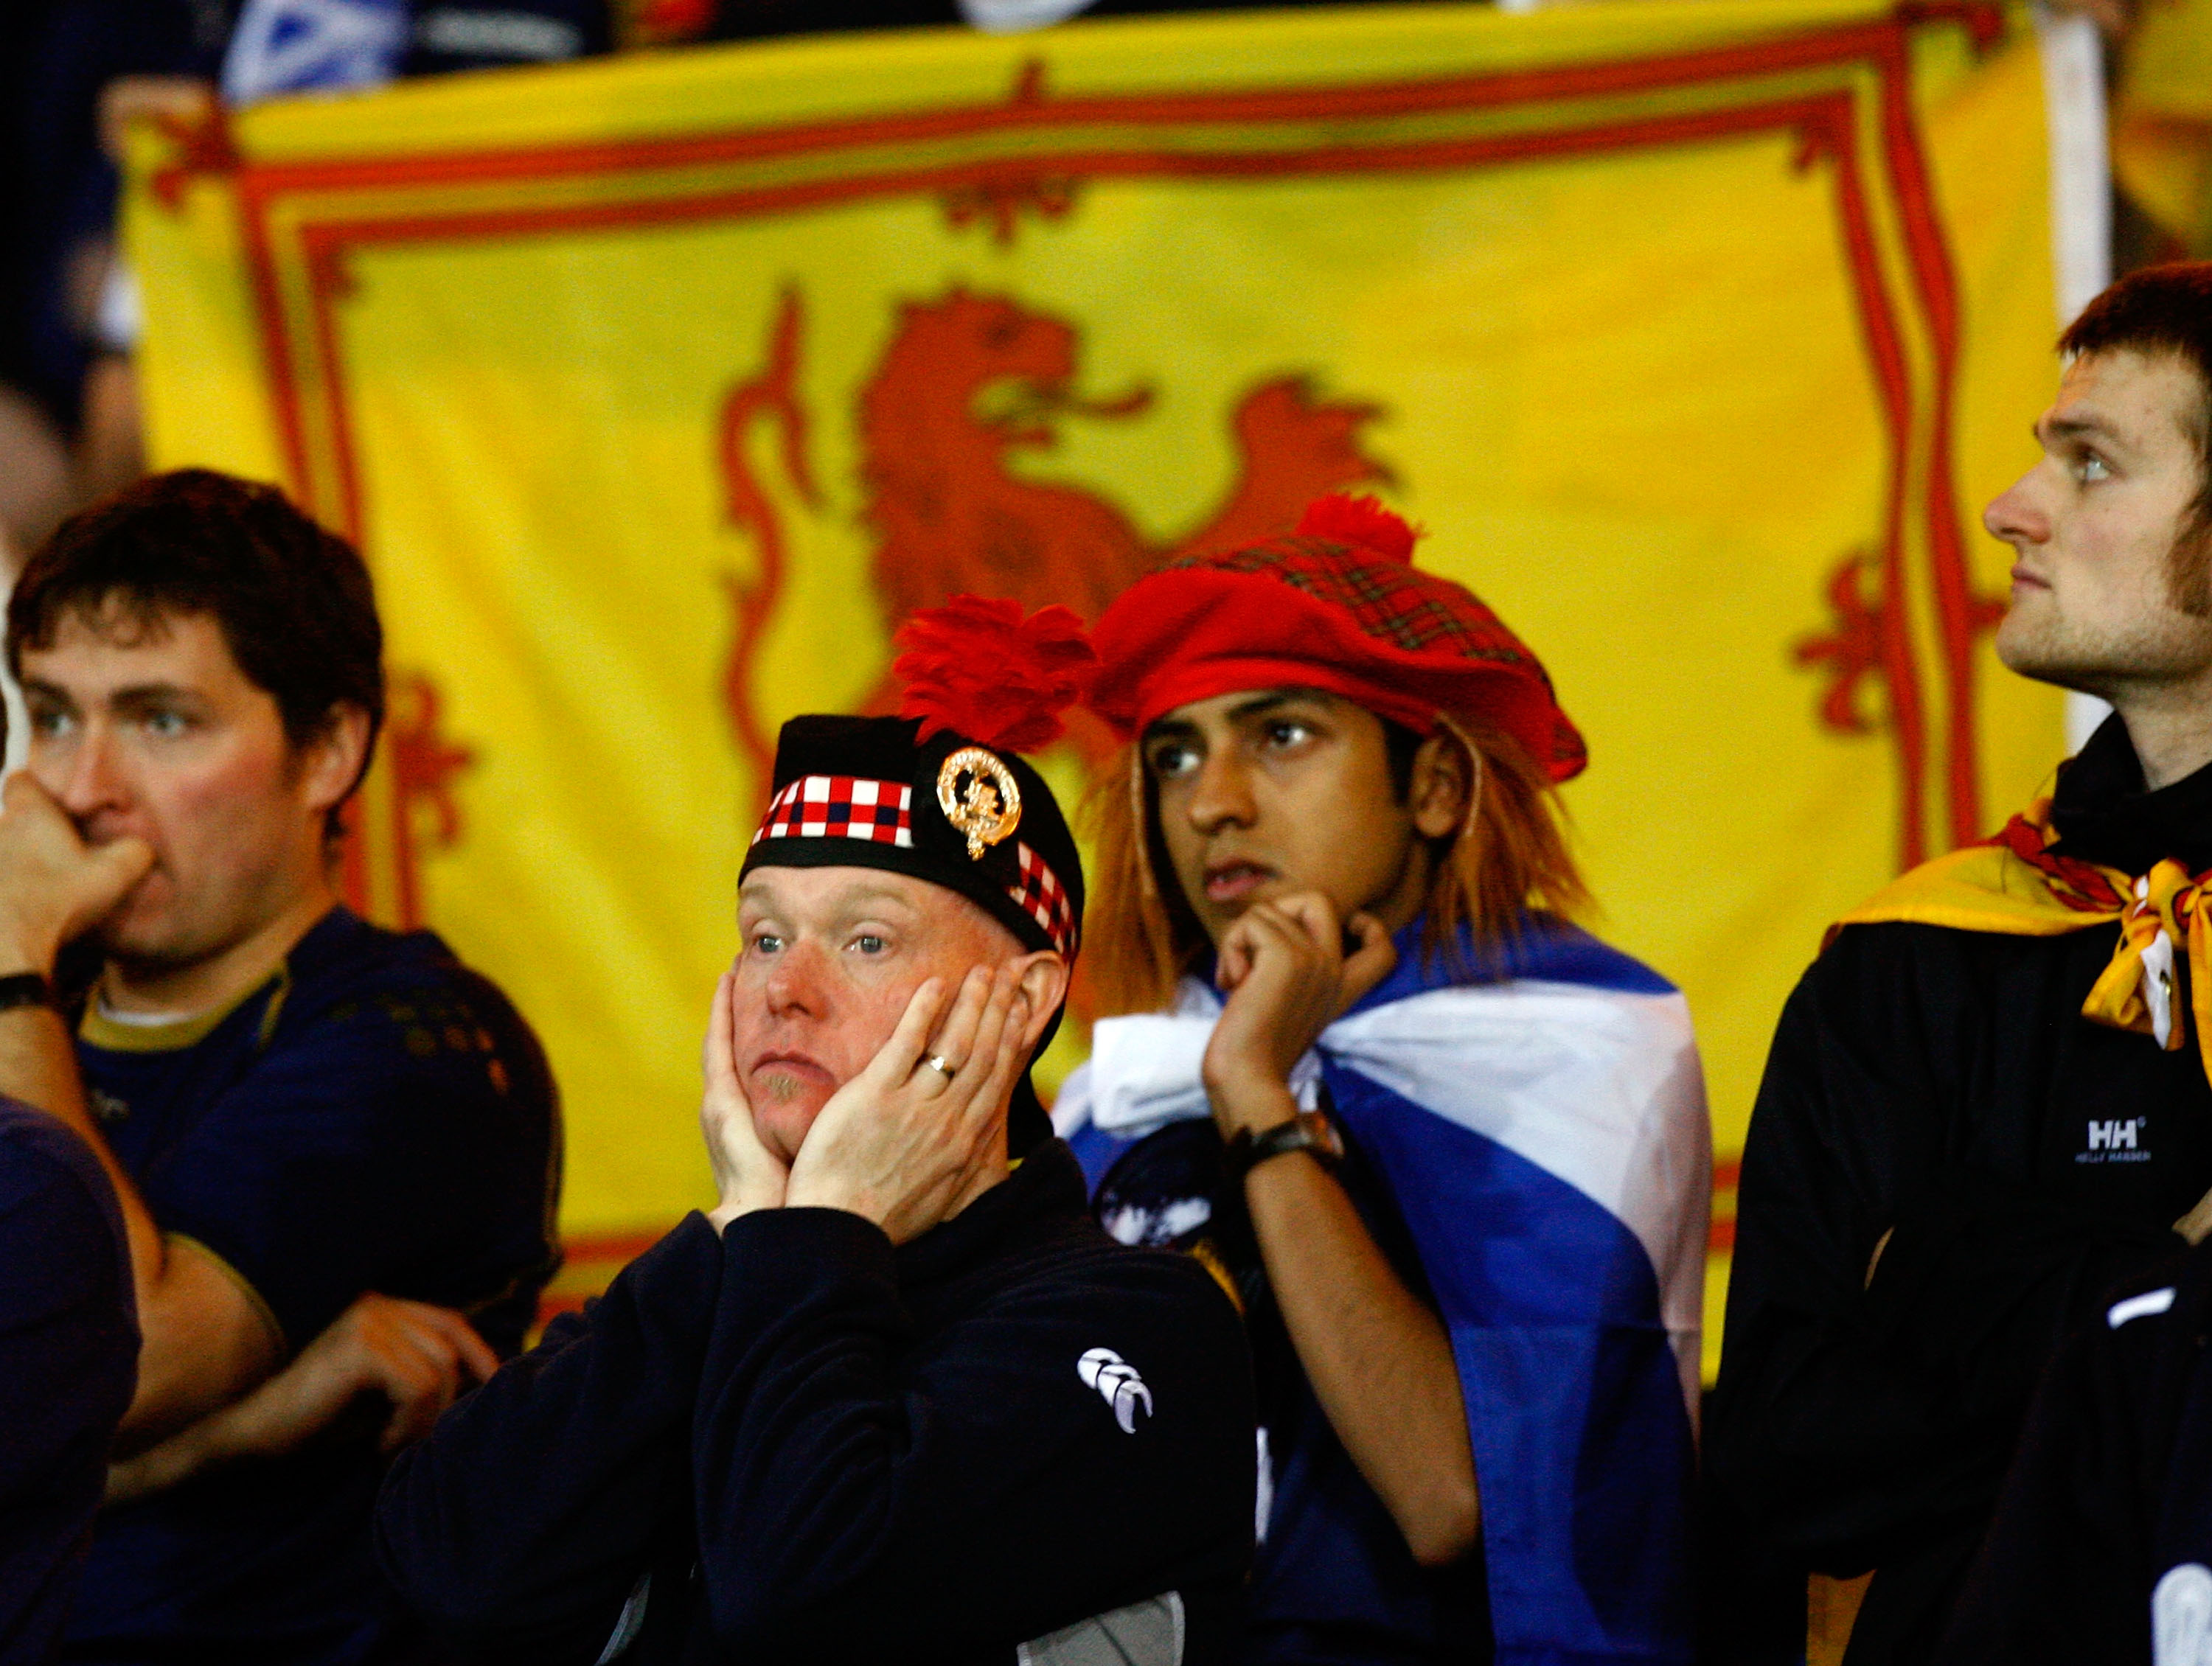 GLASGOW, UNITED KINGDOM - NOVEMBER 17: Scotland fans react at the end of UEFA Euro 2008 qualifiying match between Italy and Scotland at Hampden Park on November 17, 2007 in Glasgow, Scotland. (Photo by Jeff J Mitchell/Getty Images)